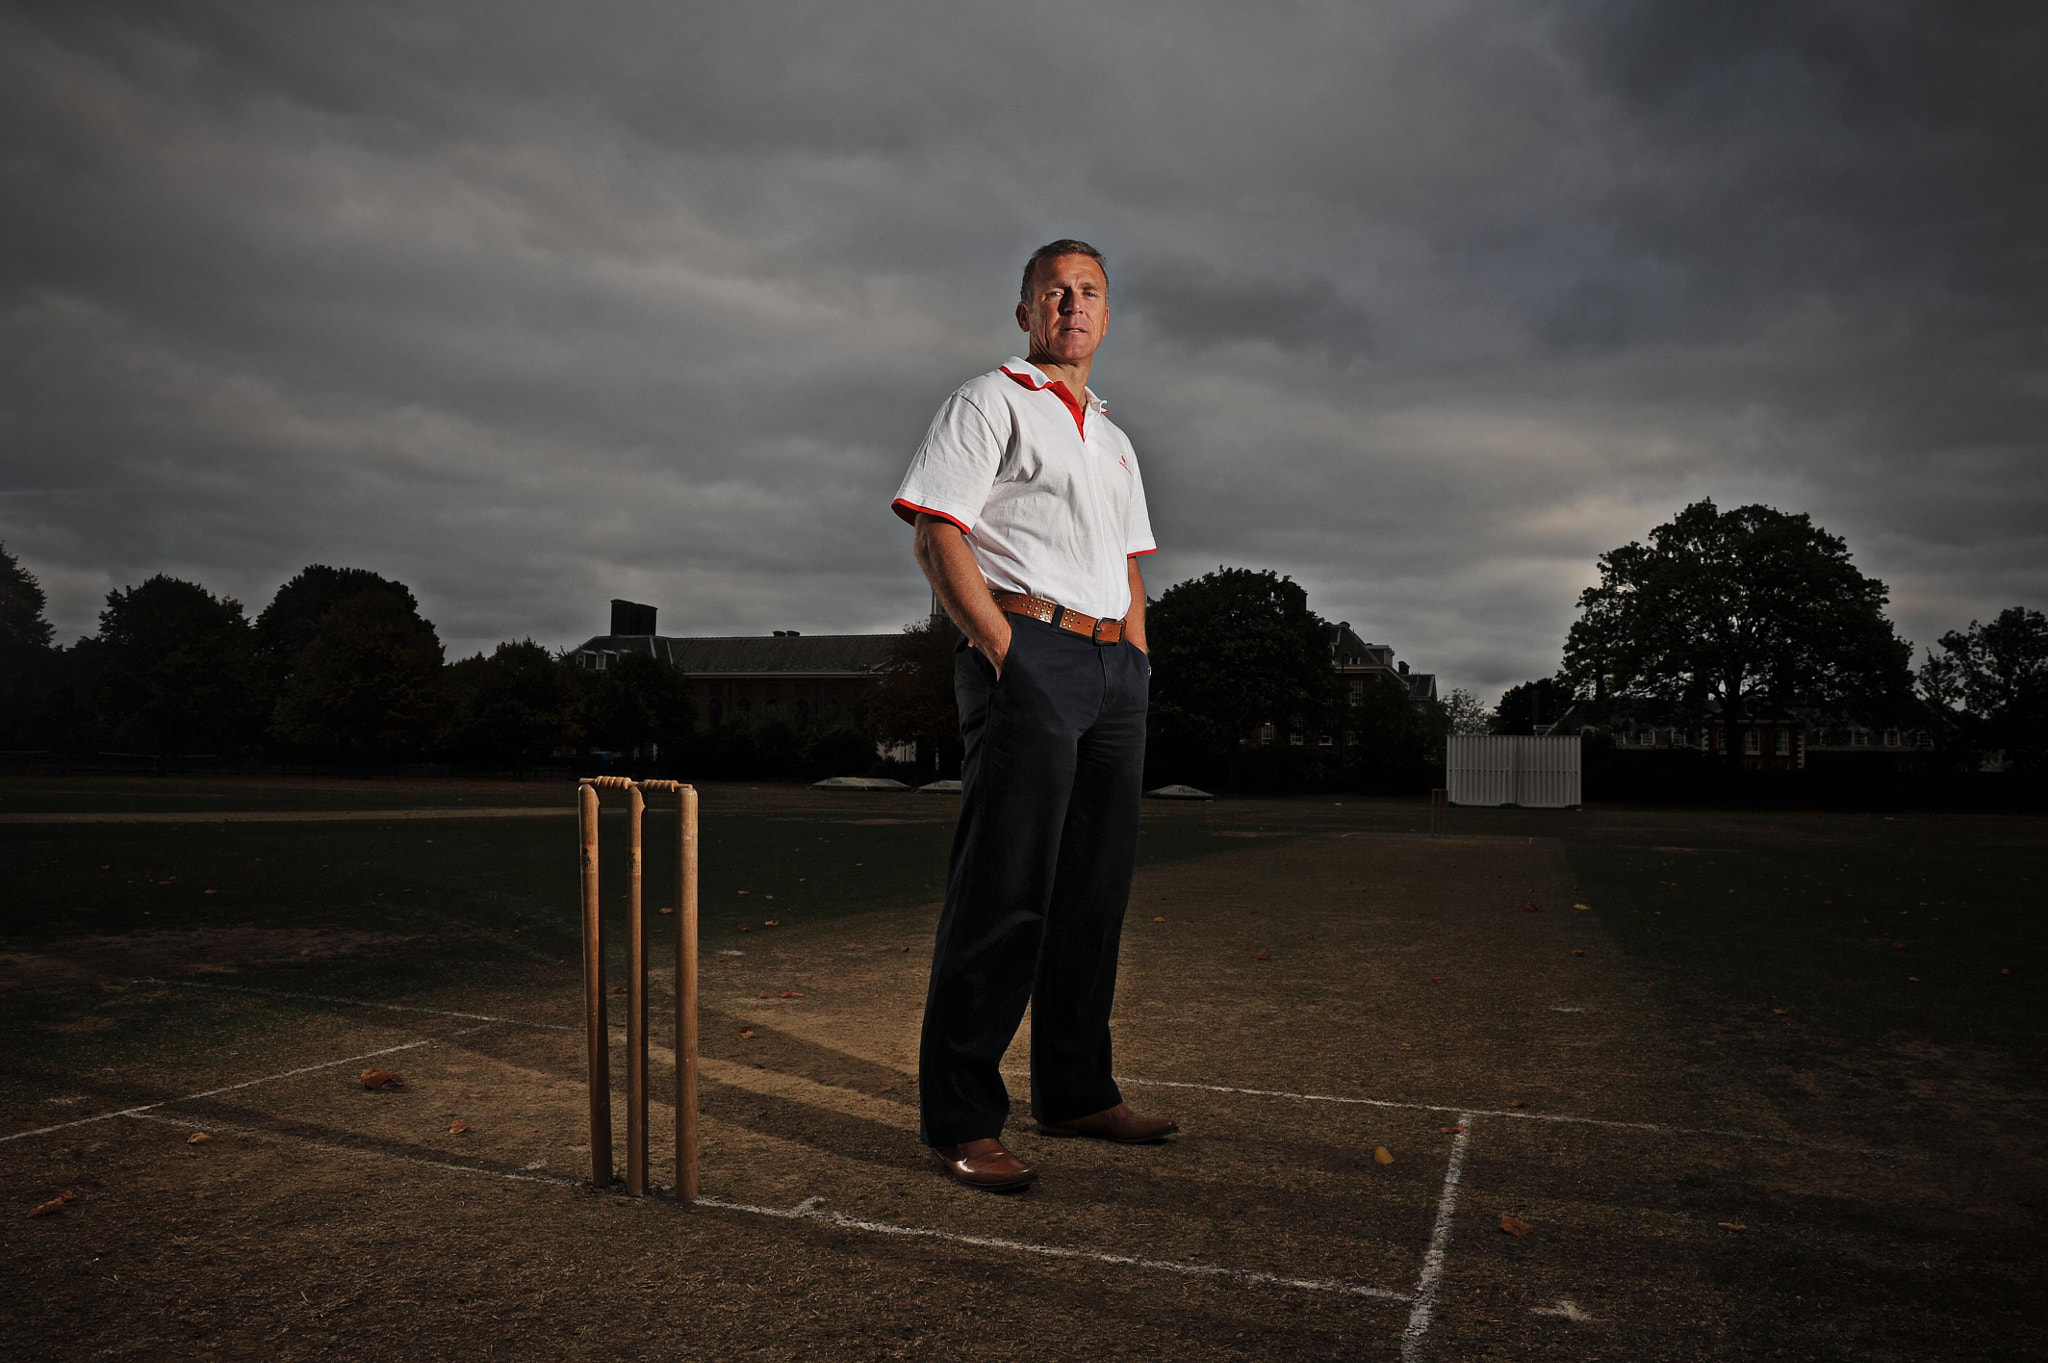 Photograph Alex Stewart, Former Cricketer by Daniel Lewis on 500px